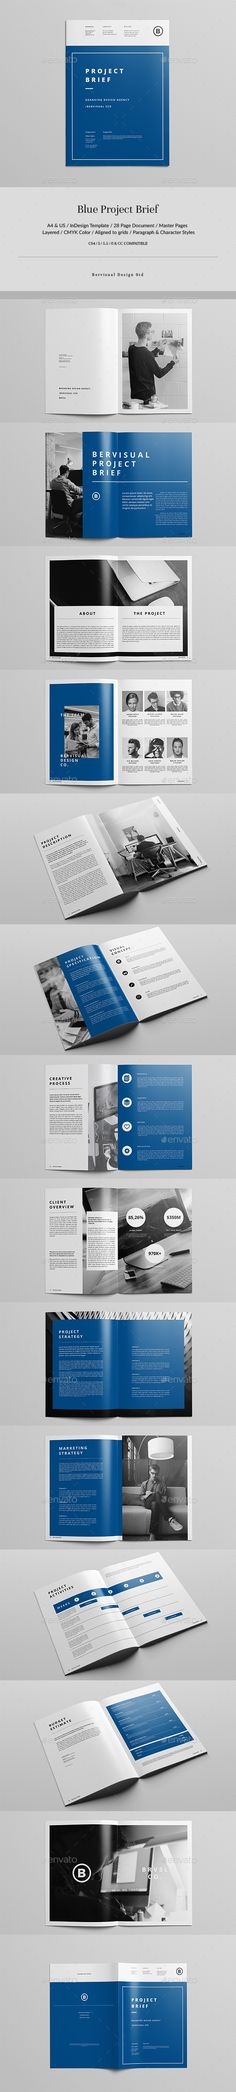 Blue Project Brief - Corporate Brochures Download here : https://graphicriver.net/item/blue-project-brief/19661595?s_rank=79&ref=Al-fatih